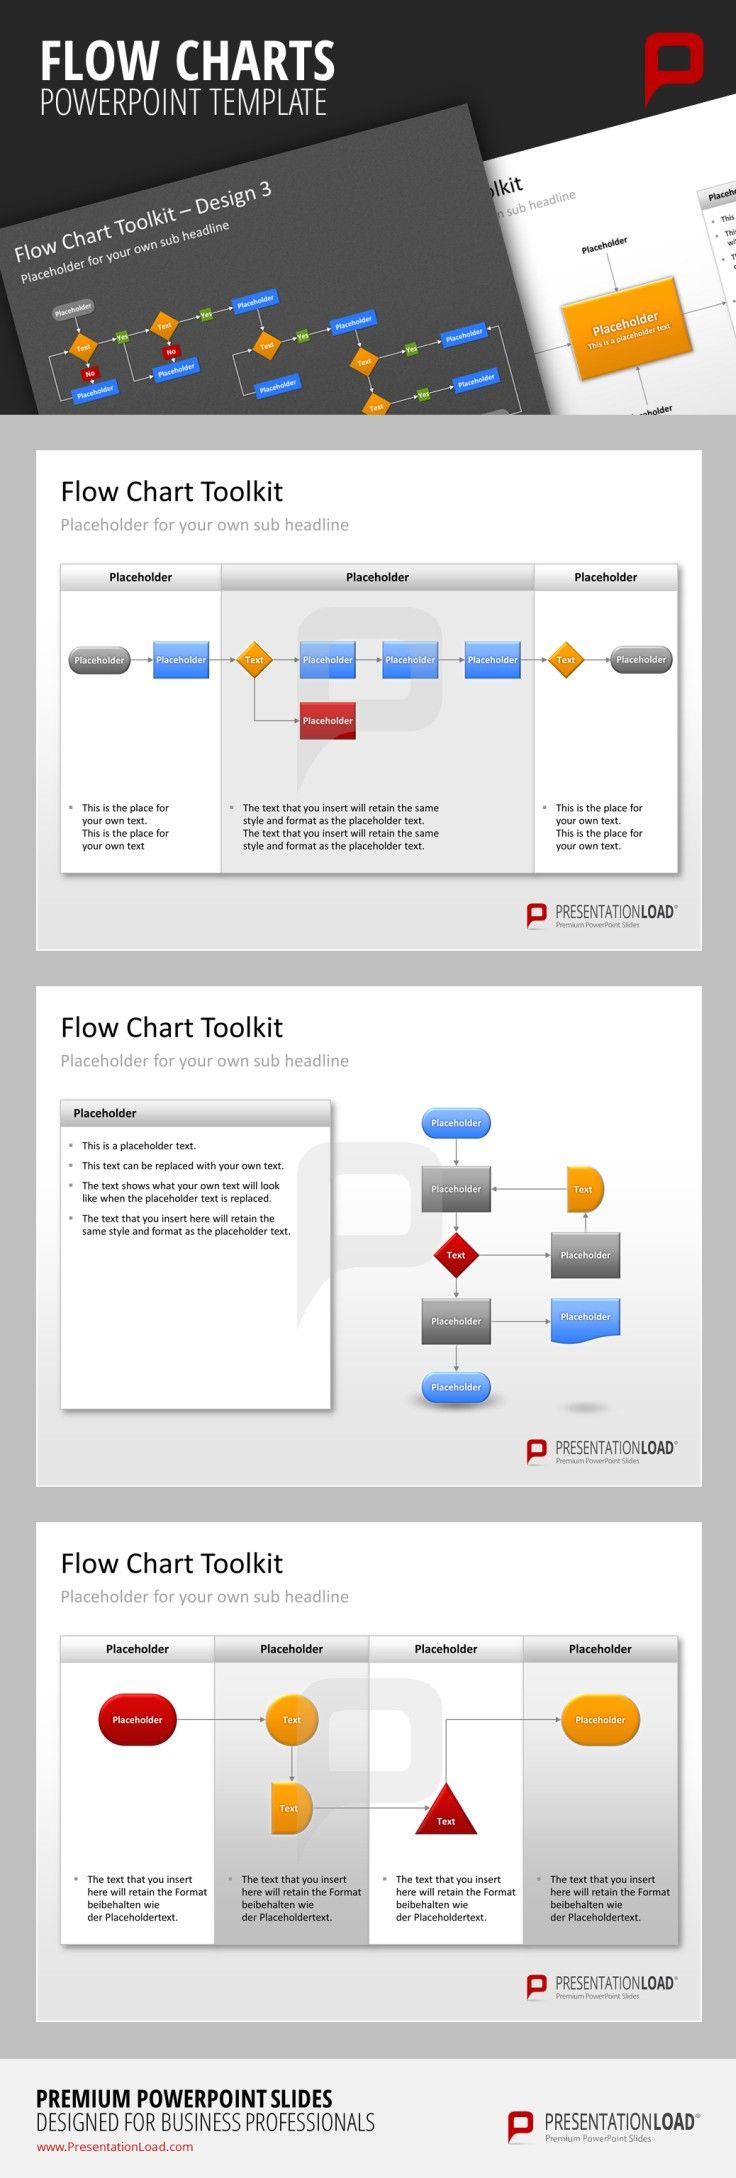 Flow Charts Powerpoint Templates Create Individual And Process Diagram Use Them To Analyze Manage Or Document Specific Processes In Various Fields